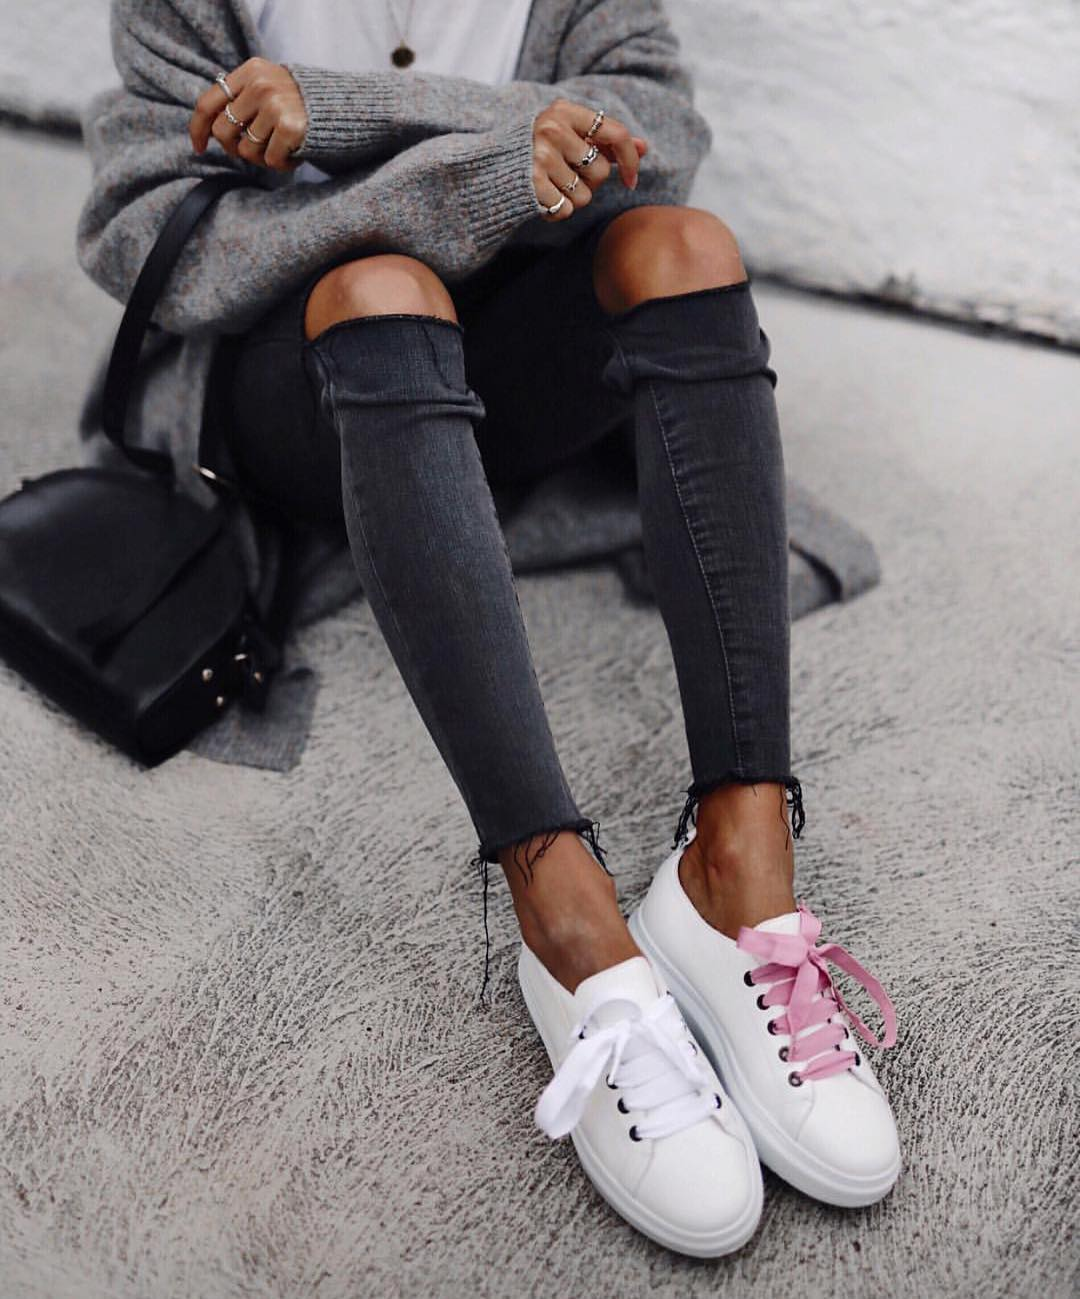 Modern Grunge For Spring: Knee Ripped Jeans, Wool Cardigan And White Kicks 2019